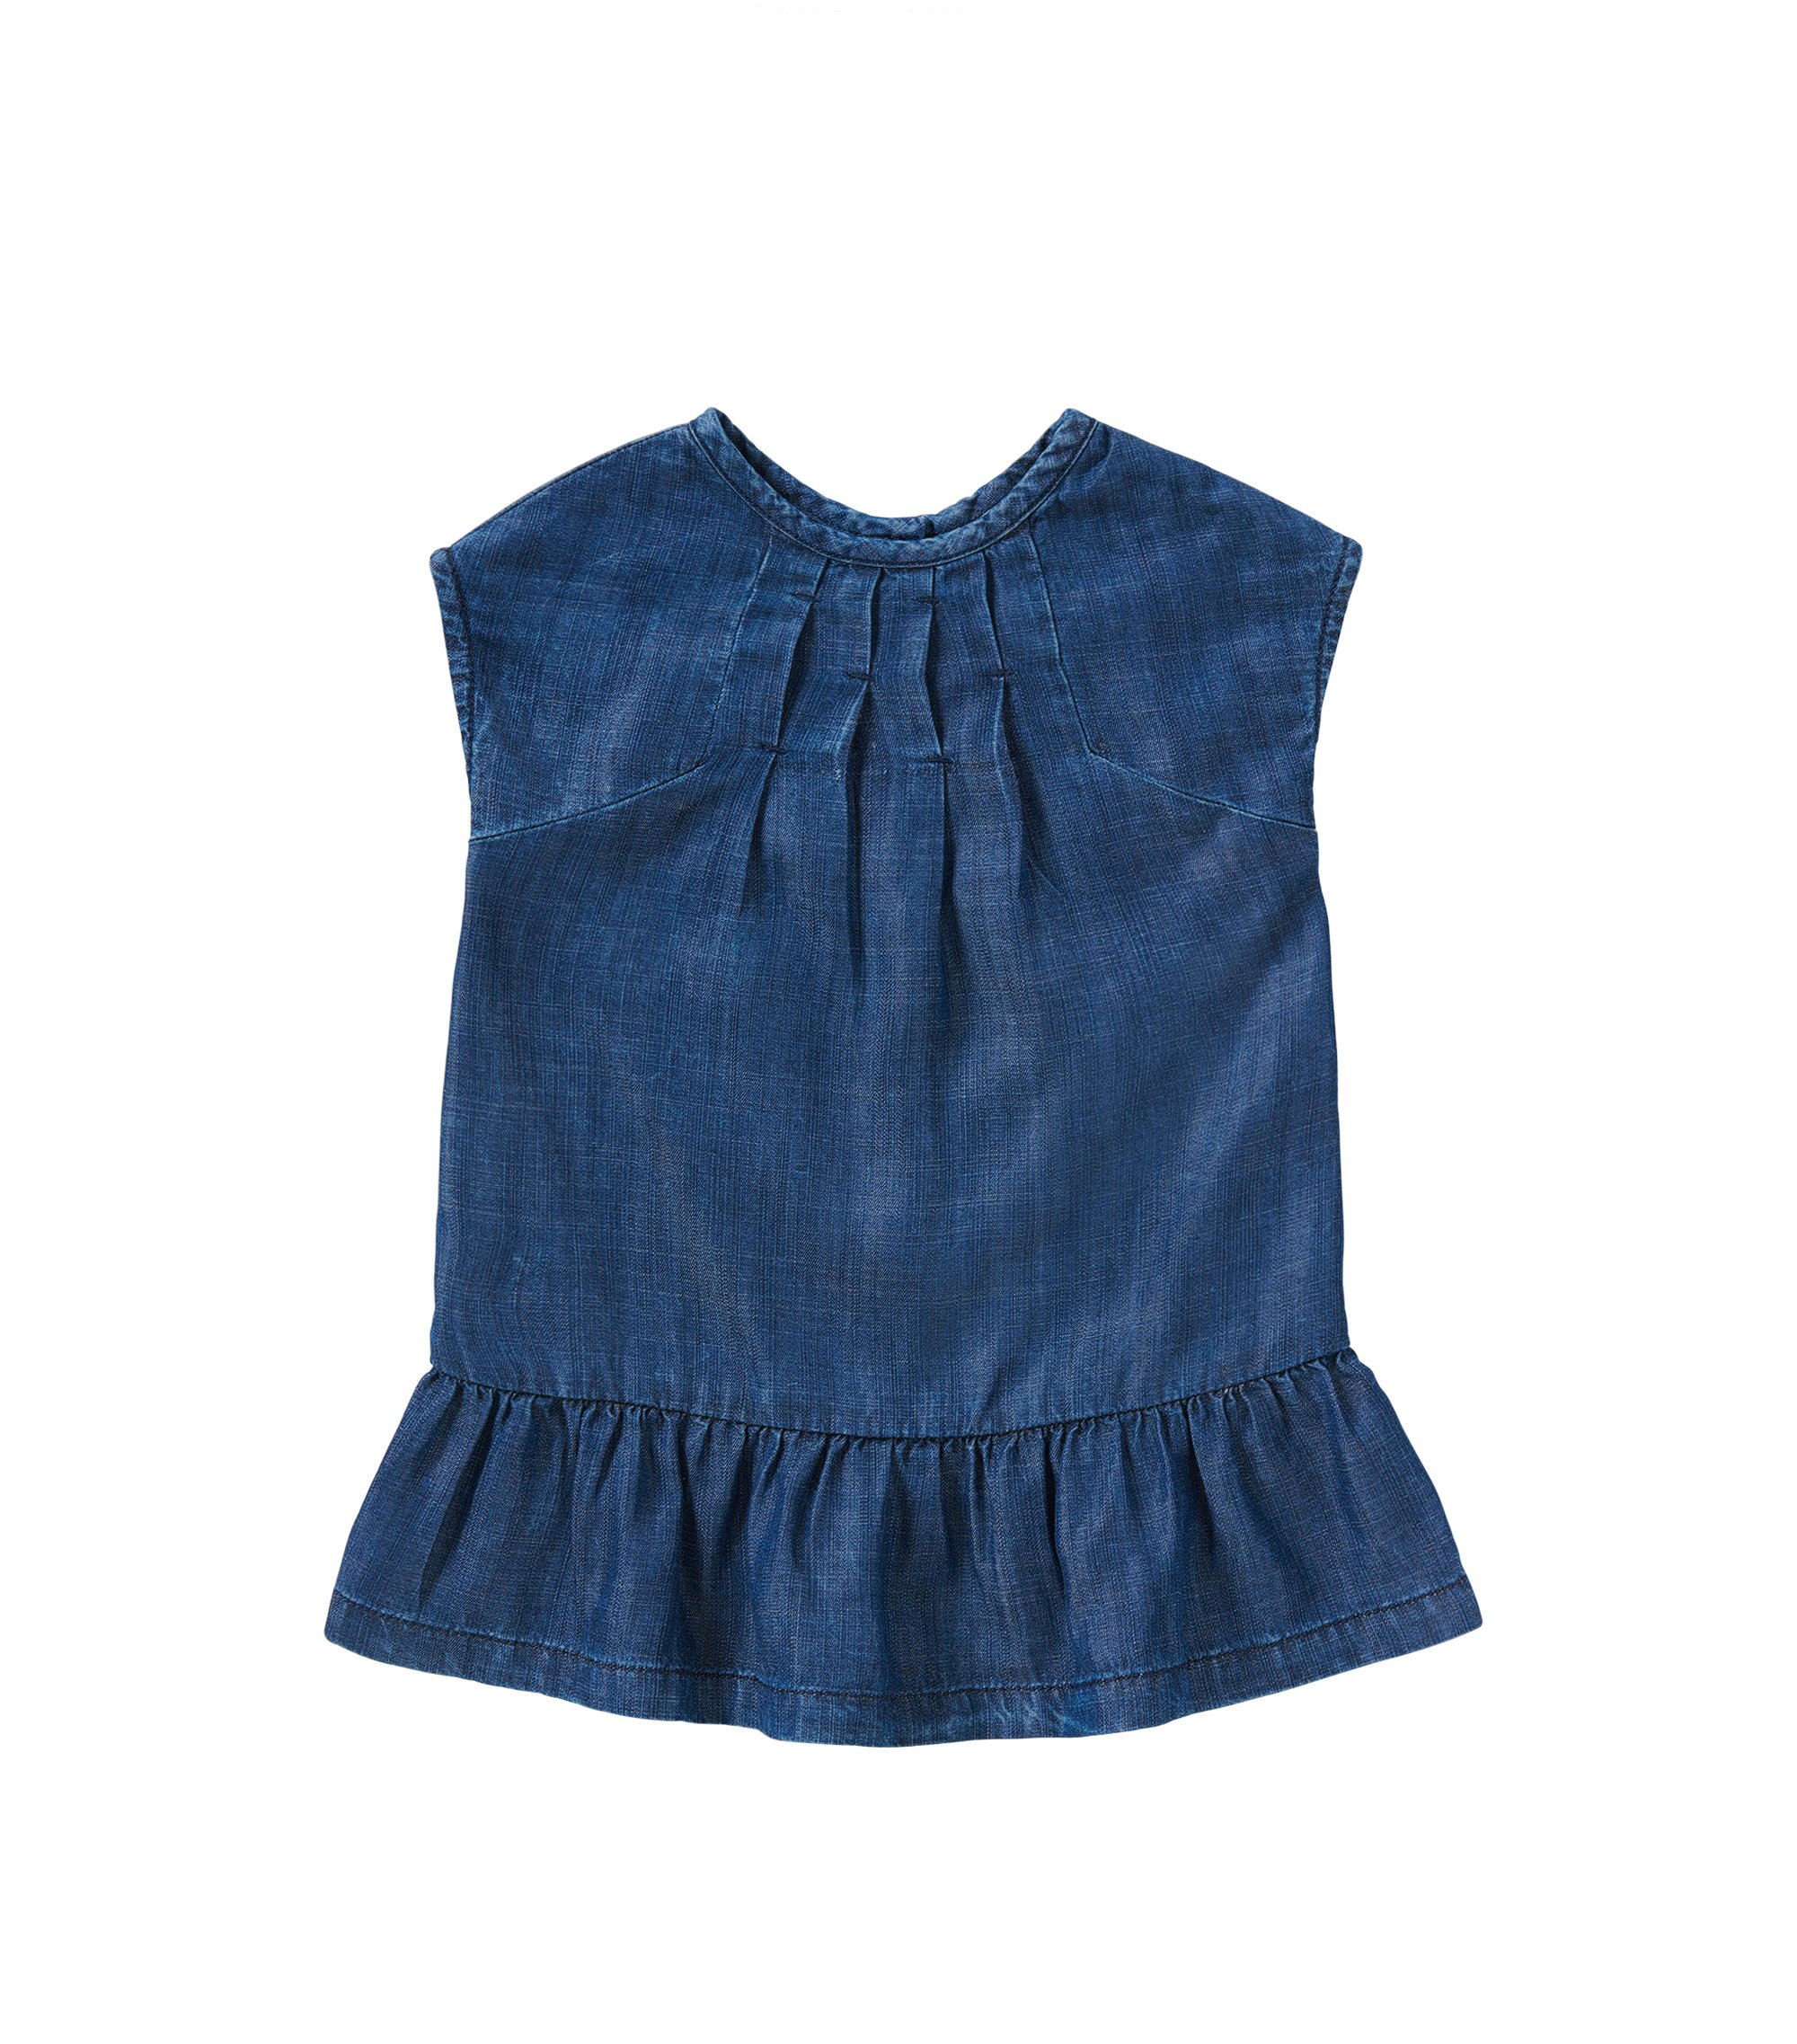 Kids-Kleid in Denim-Optik: 'J02024', Gemustert